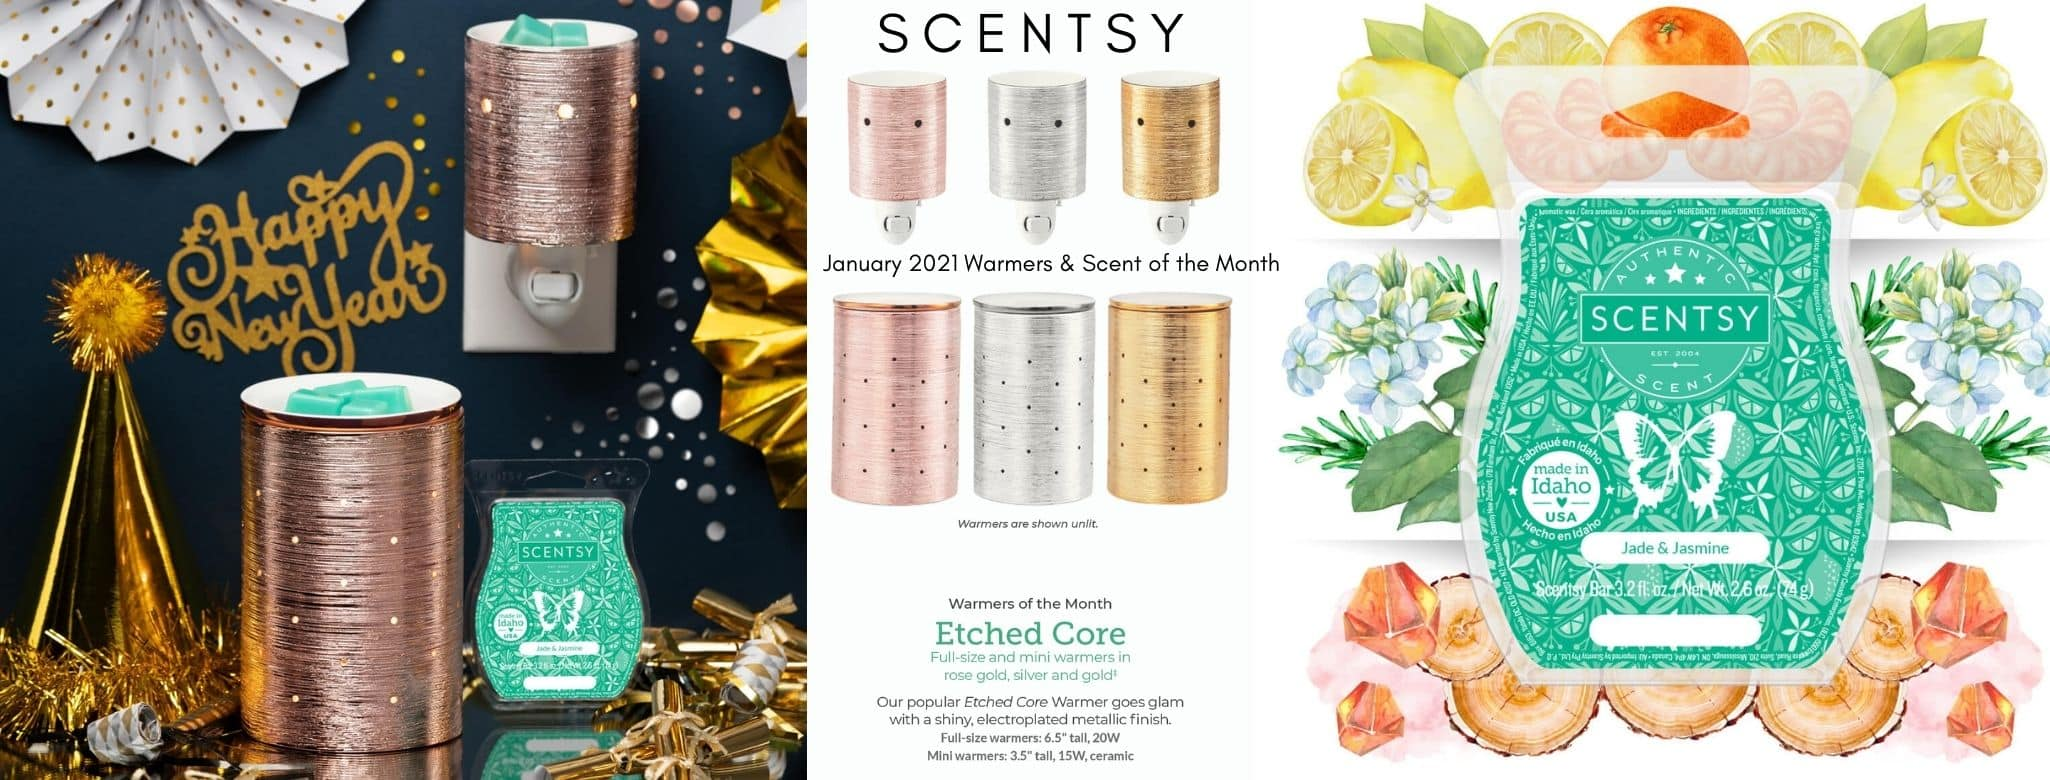 SCENTSY JANUARY 2021 WARMER SCENT OF THE MONTH